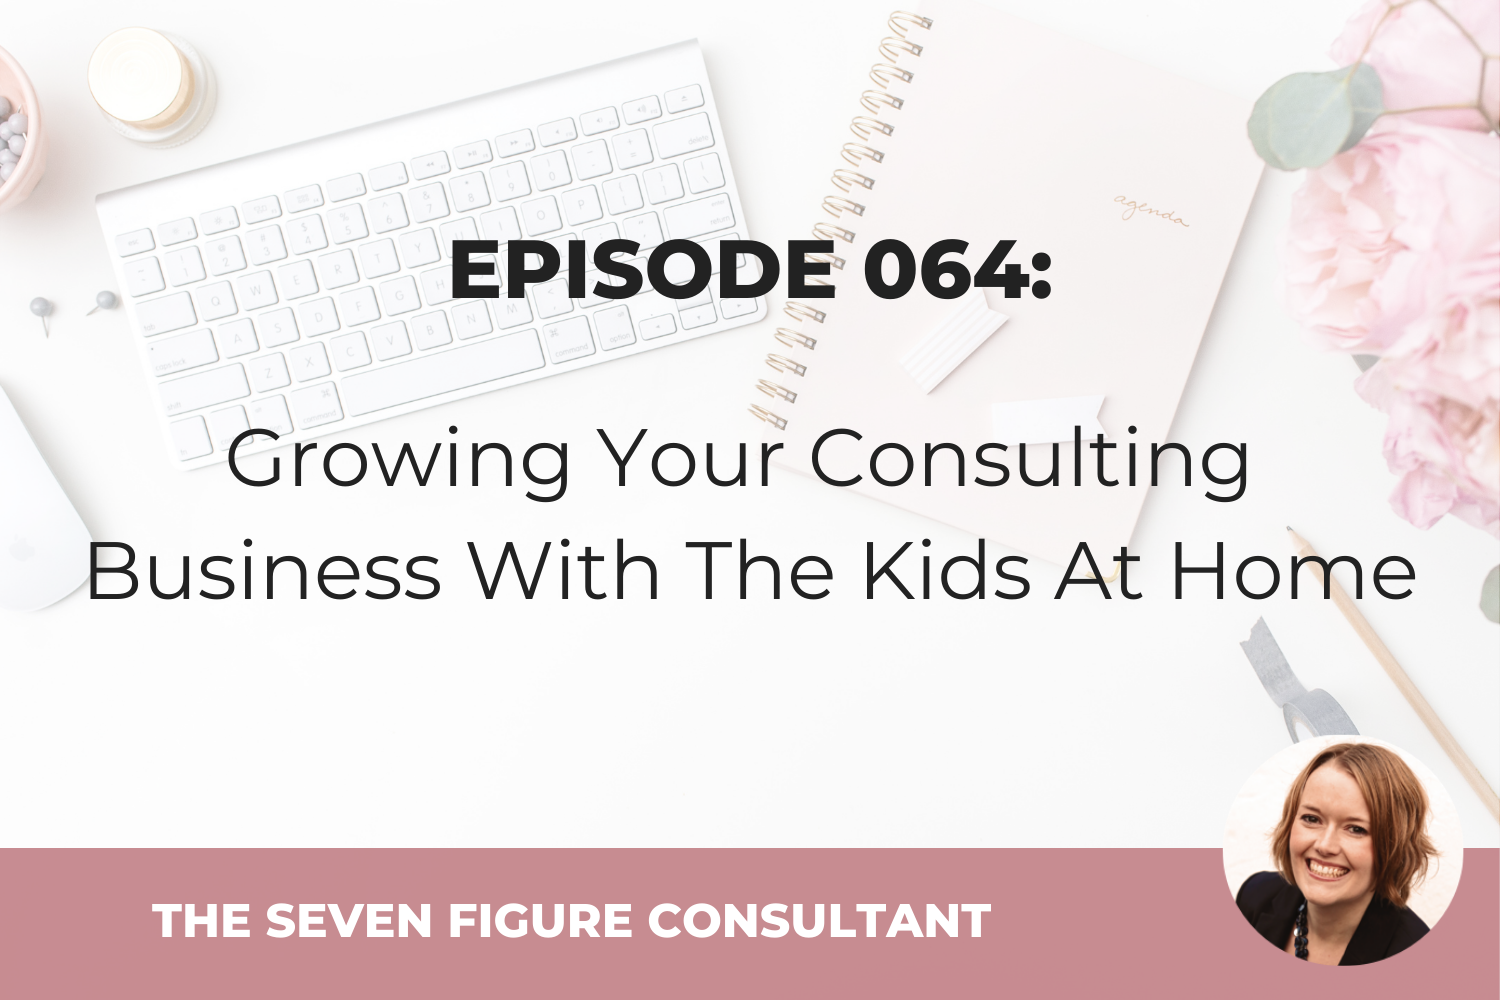 Episode 064: Growing Your Consulting Business With The Kids At Home